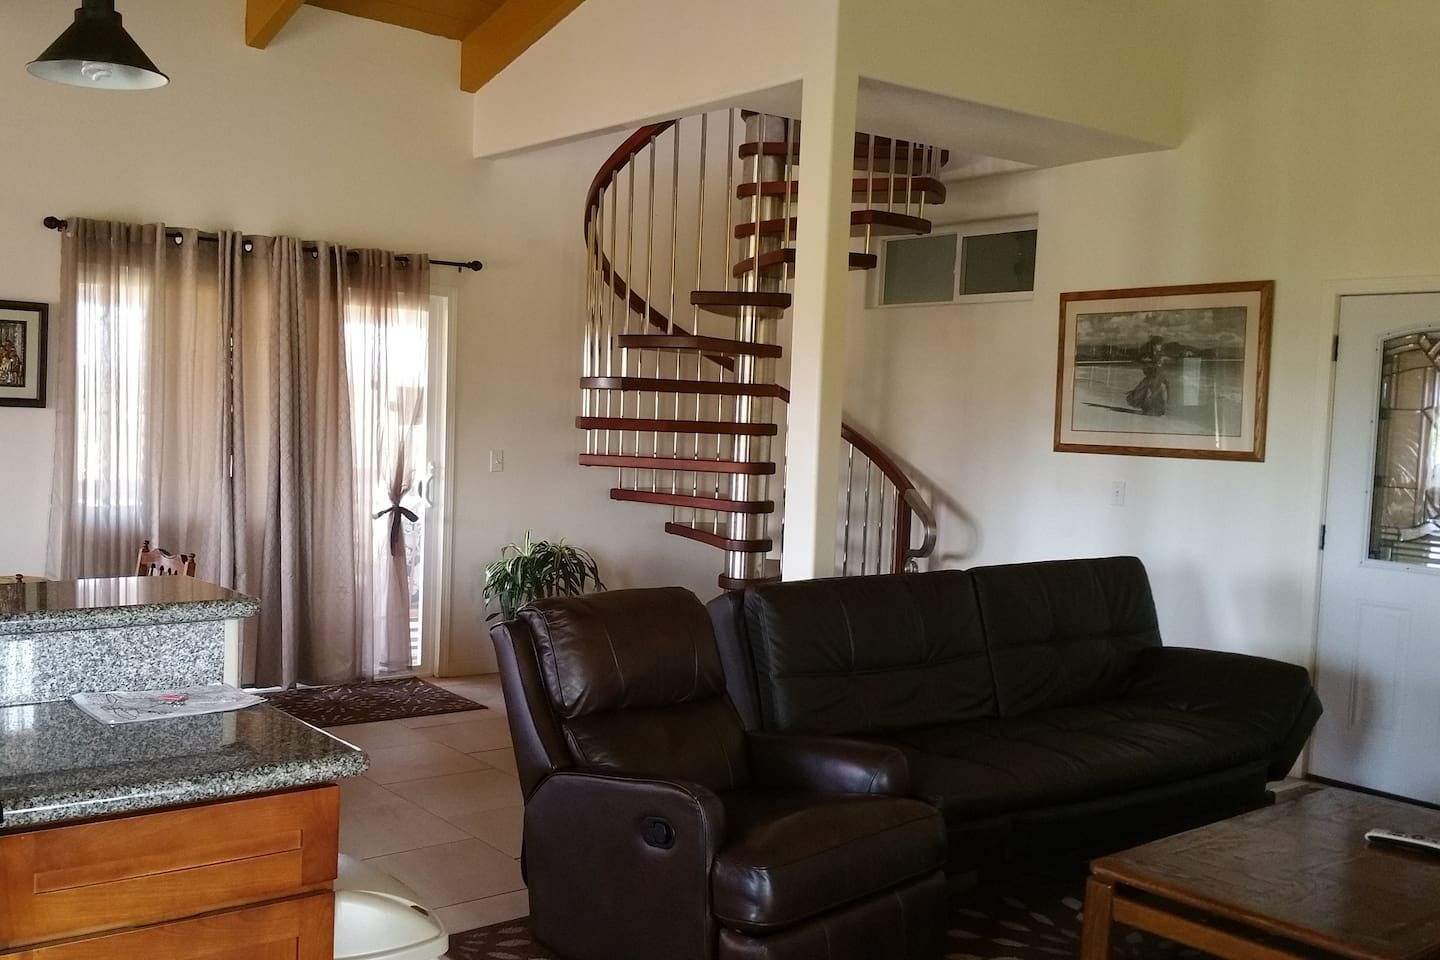 Spacious living room in the Nice, Big House w/ spiral staircase